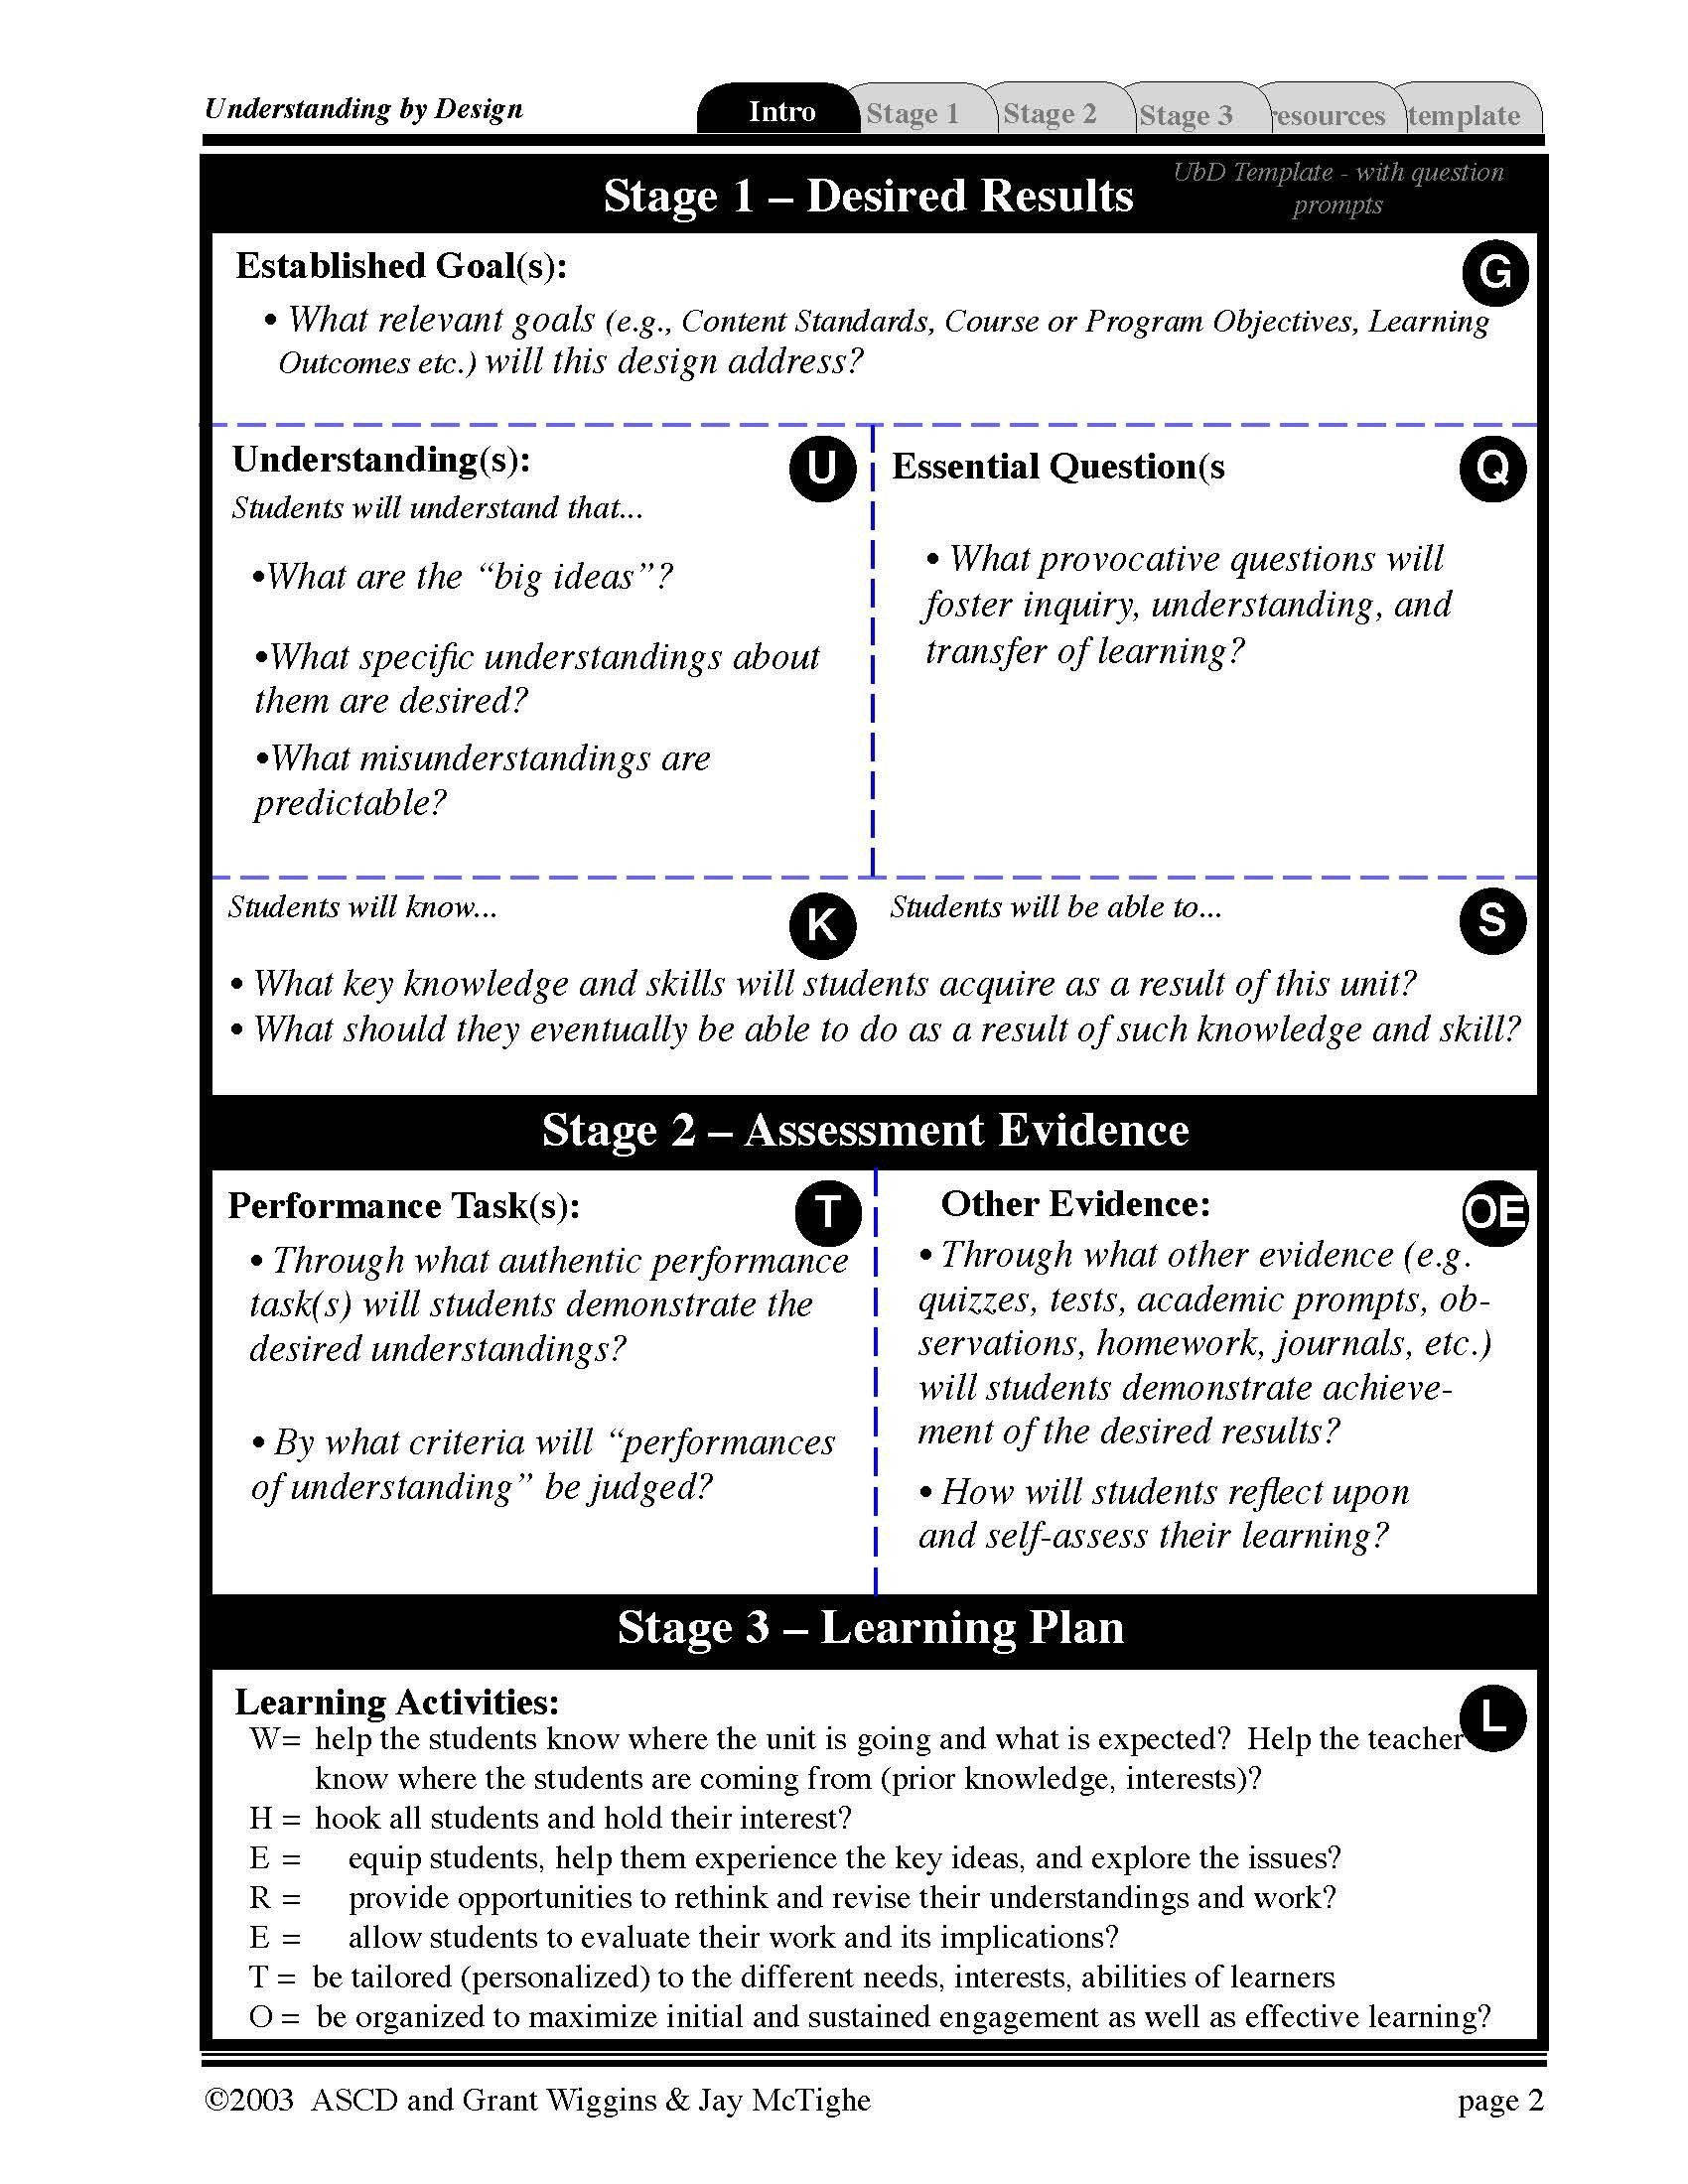 20 Ubd Lesson Plan Template in 2020